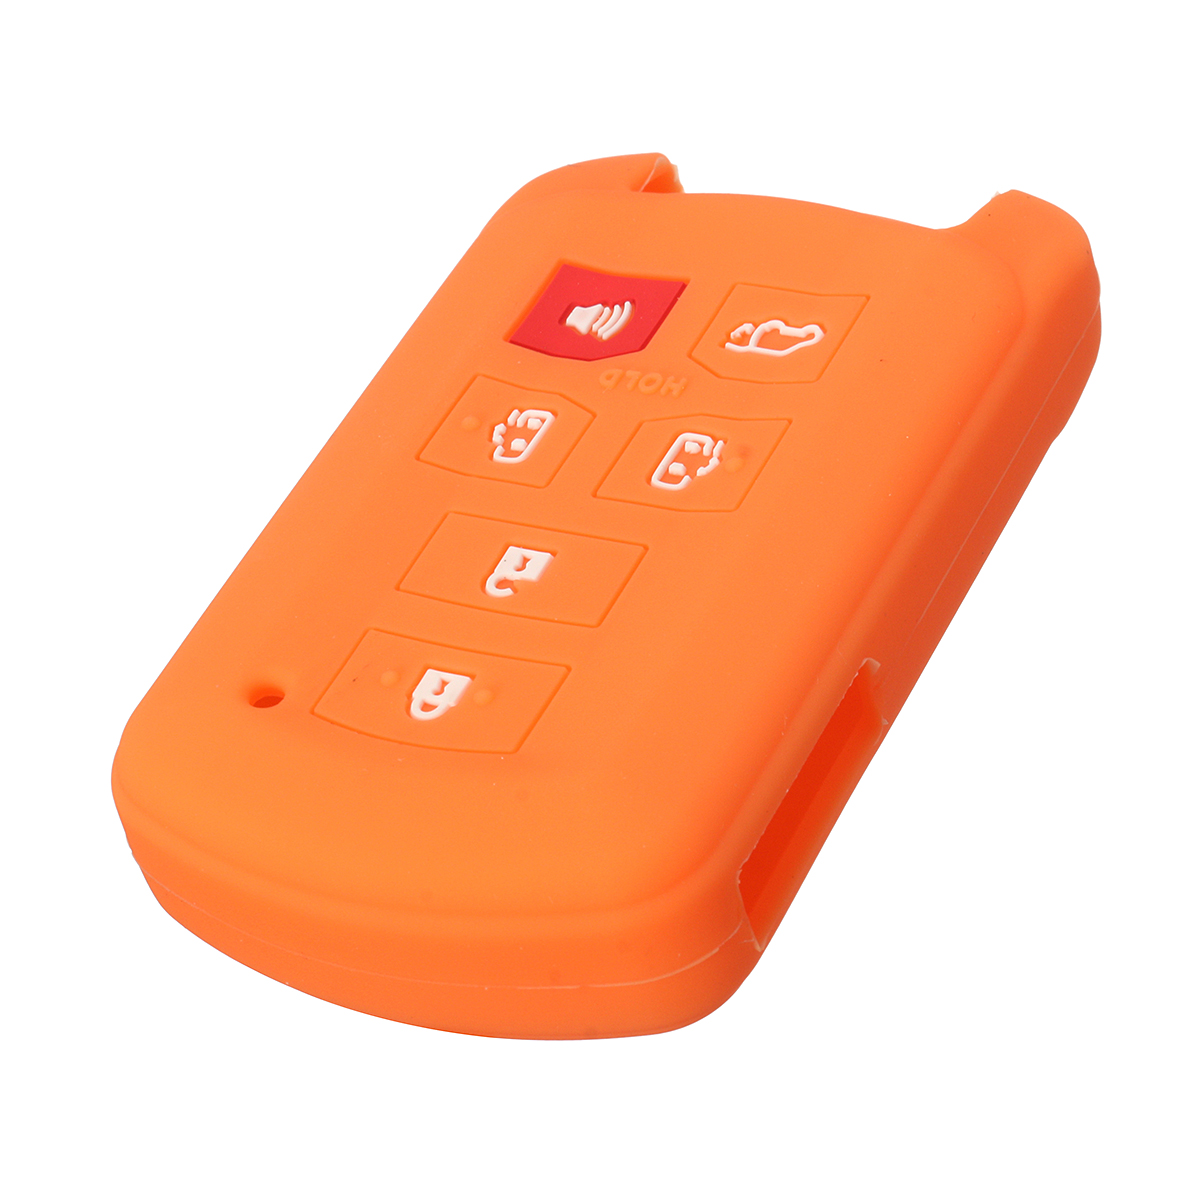 6 Buttons Silicone Car Key Case Cover For Toyota Sienna Remote Smart Key HYQ14ADR